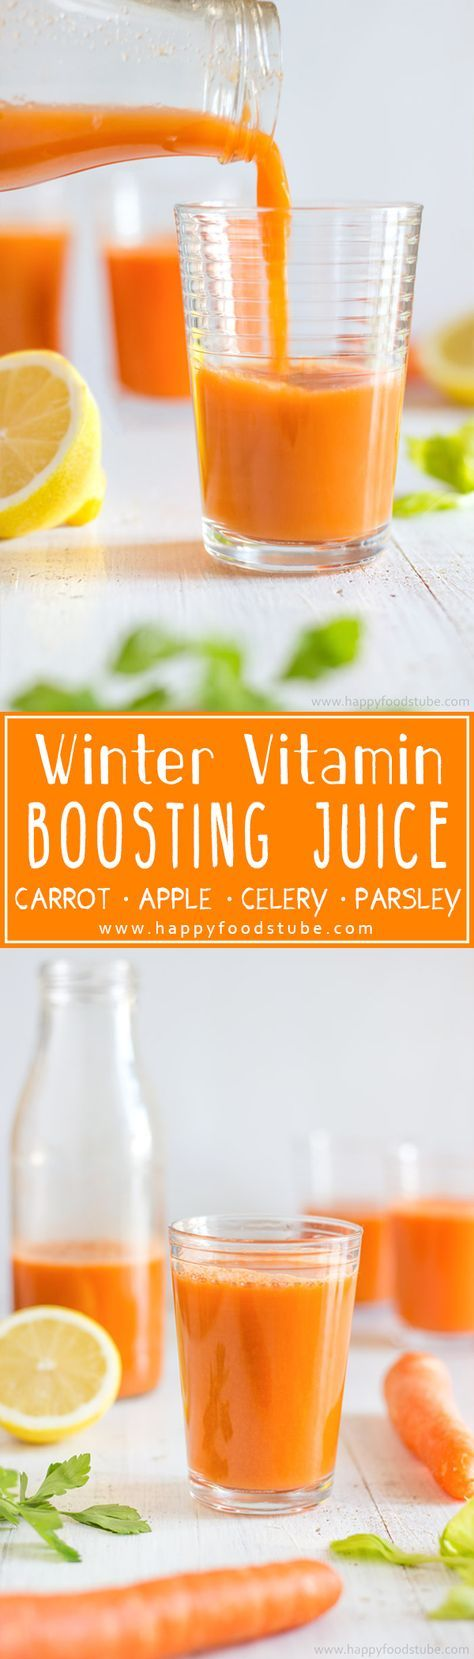 Winter Vitamin Boosting Juice will help you stay healthy throughout cold season! It's homemade, rich in Vitamin C & ready in 5 minutes! Only 5 ingredients - carrot, apple, celery and parsley | http://happyfoodstube.com